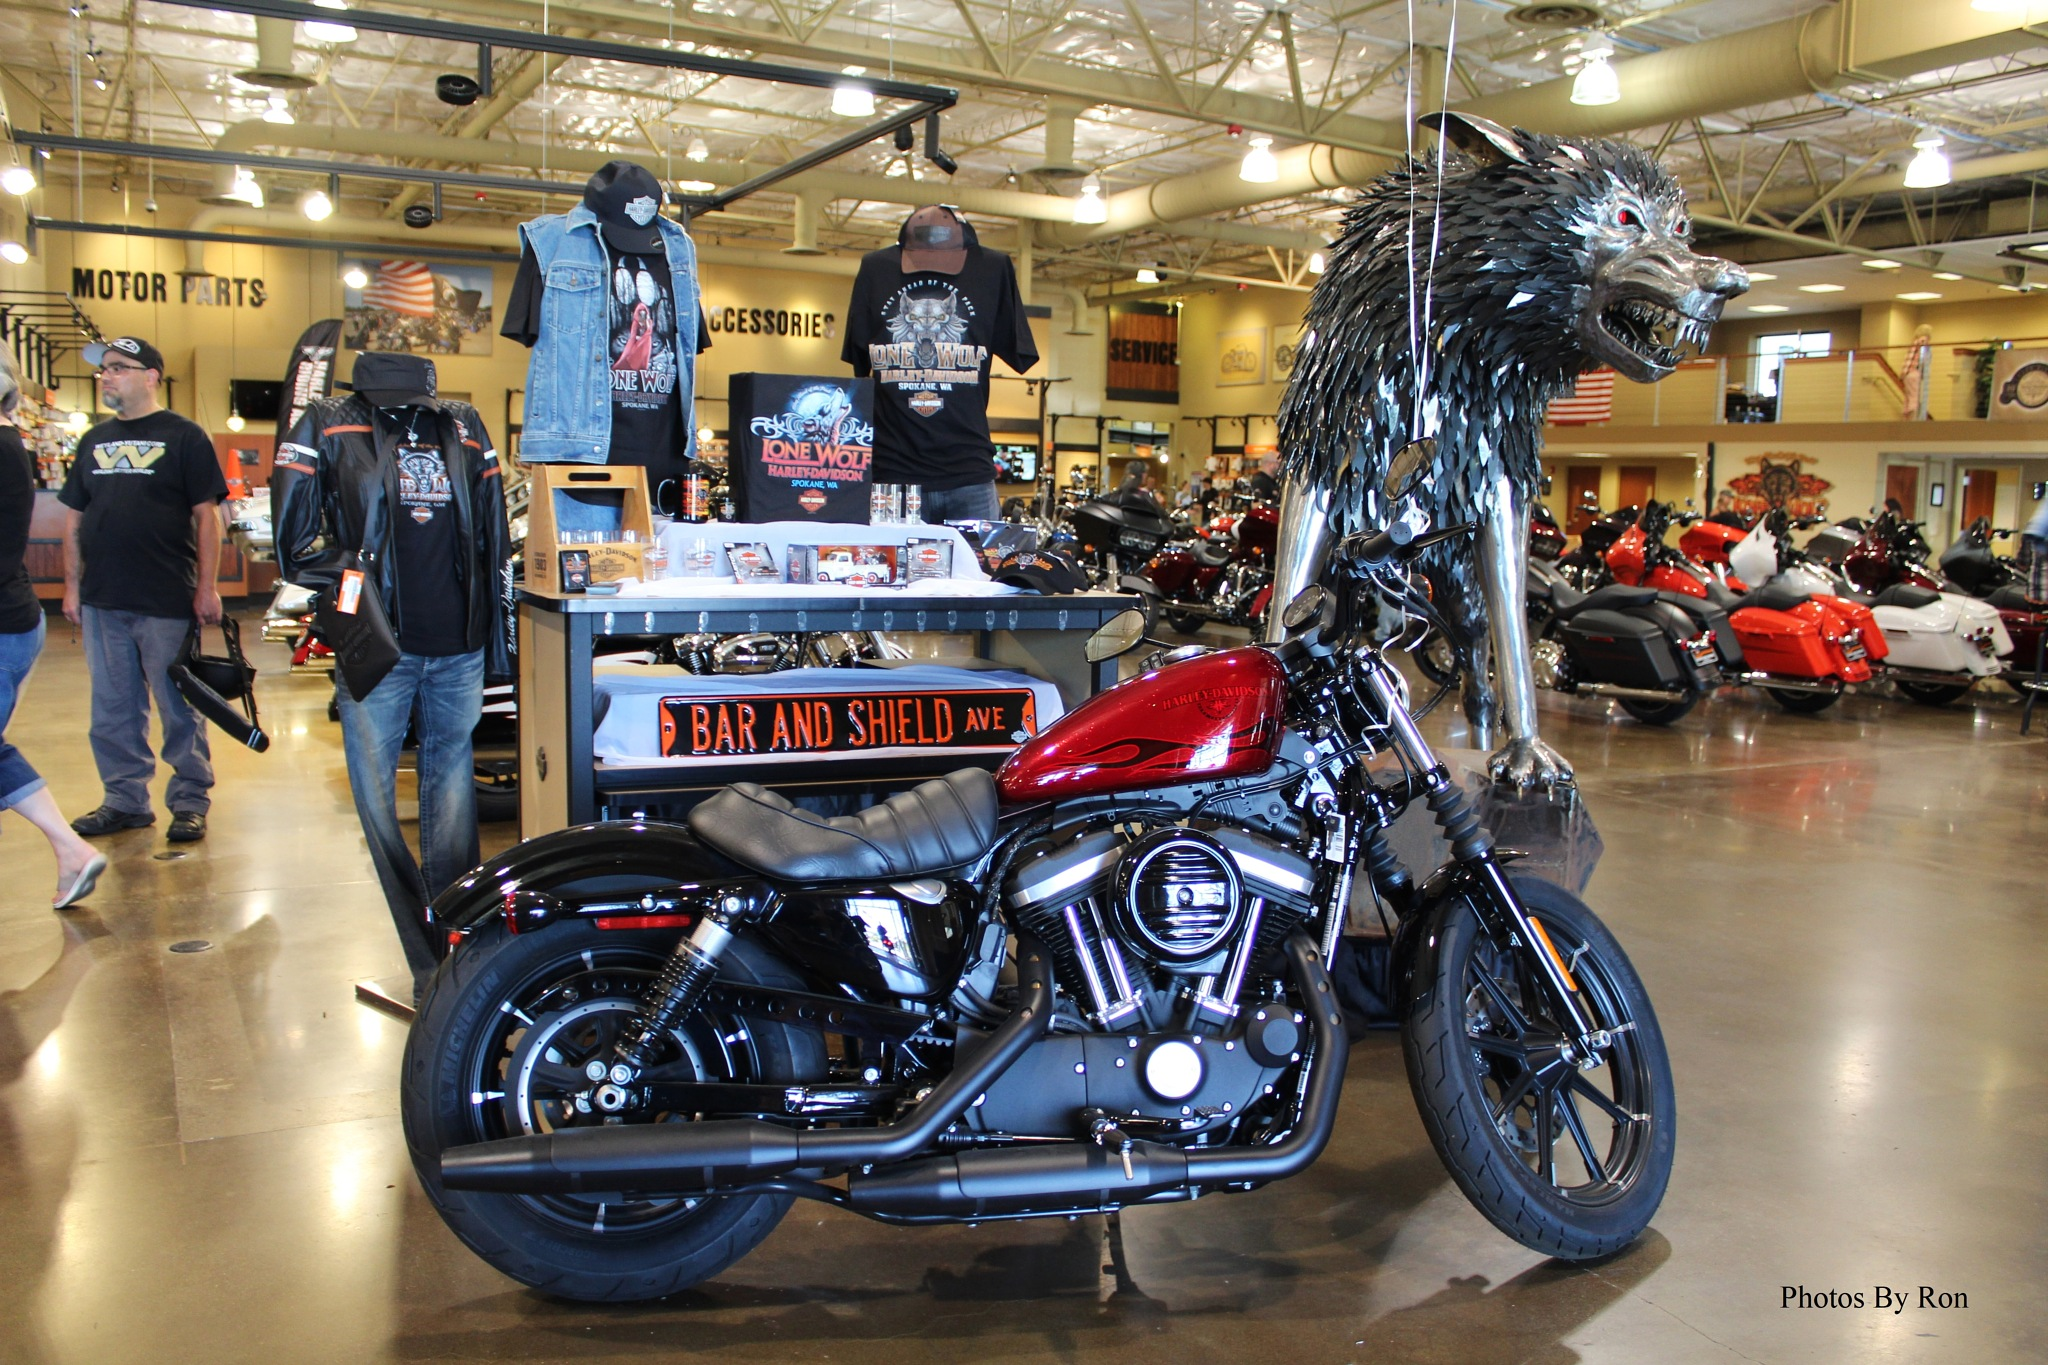 """A Random Shot At Lone Wolf Harley-Davidson At Spokane Valley, WA, USA"" by Ron Berkley"